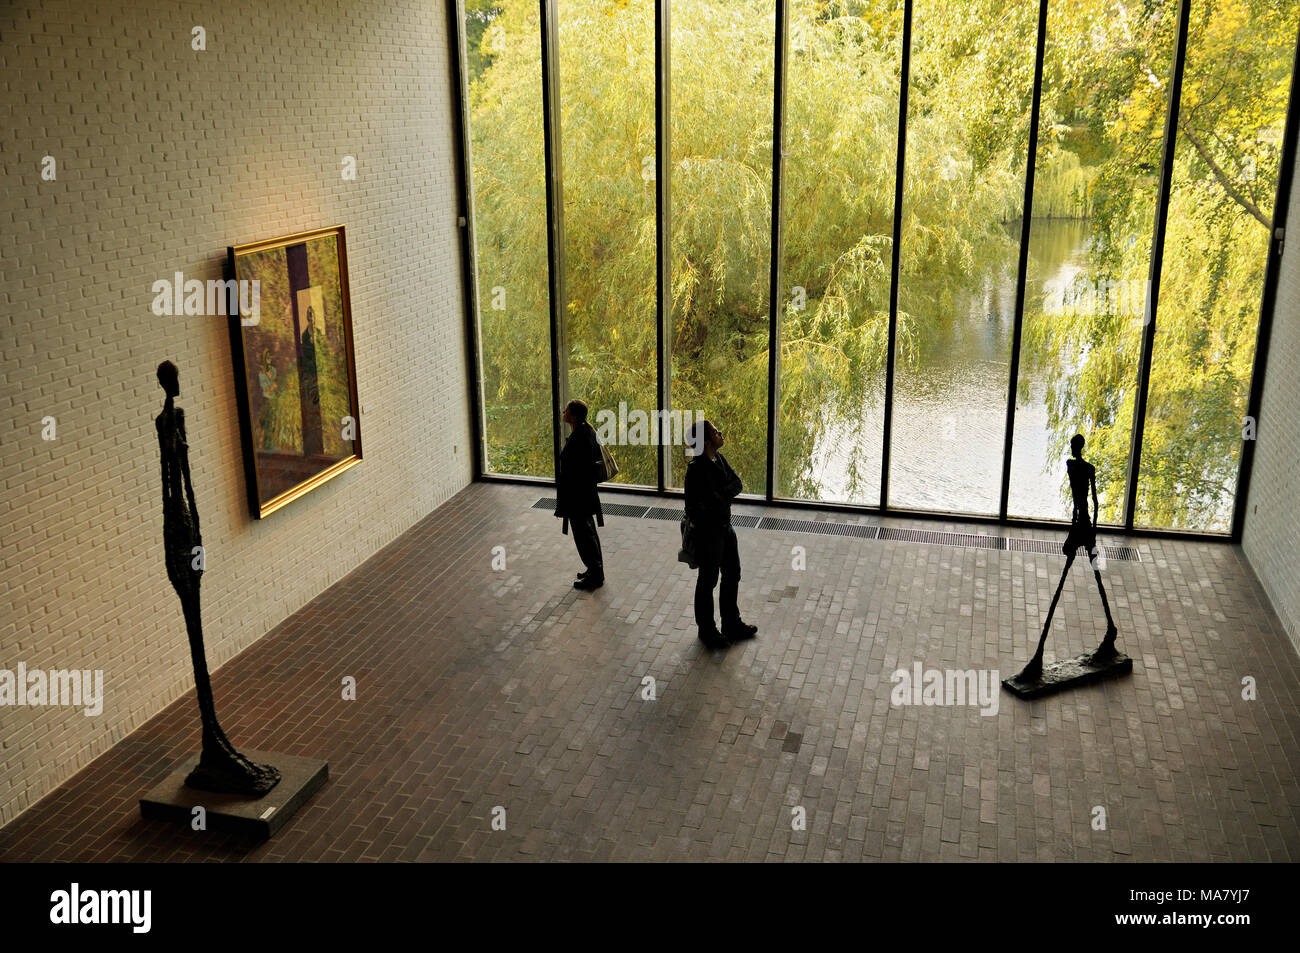 Visitors and sculptures from Alberto Giacometti at Louisiana Museum of Modern Art, Humlebæk, Denmark - Stock Image